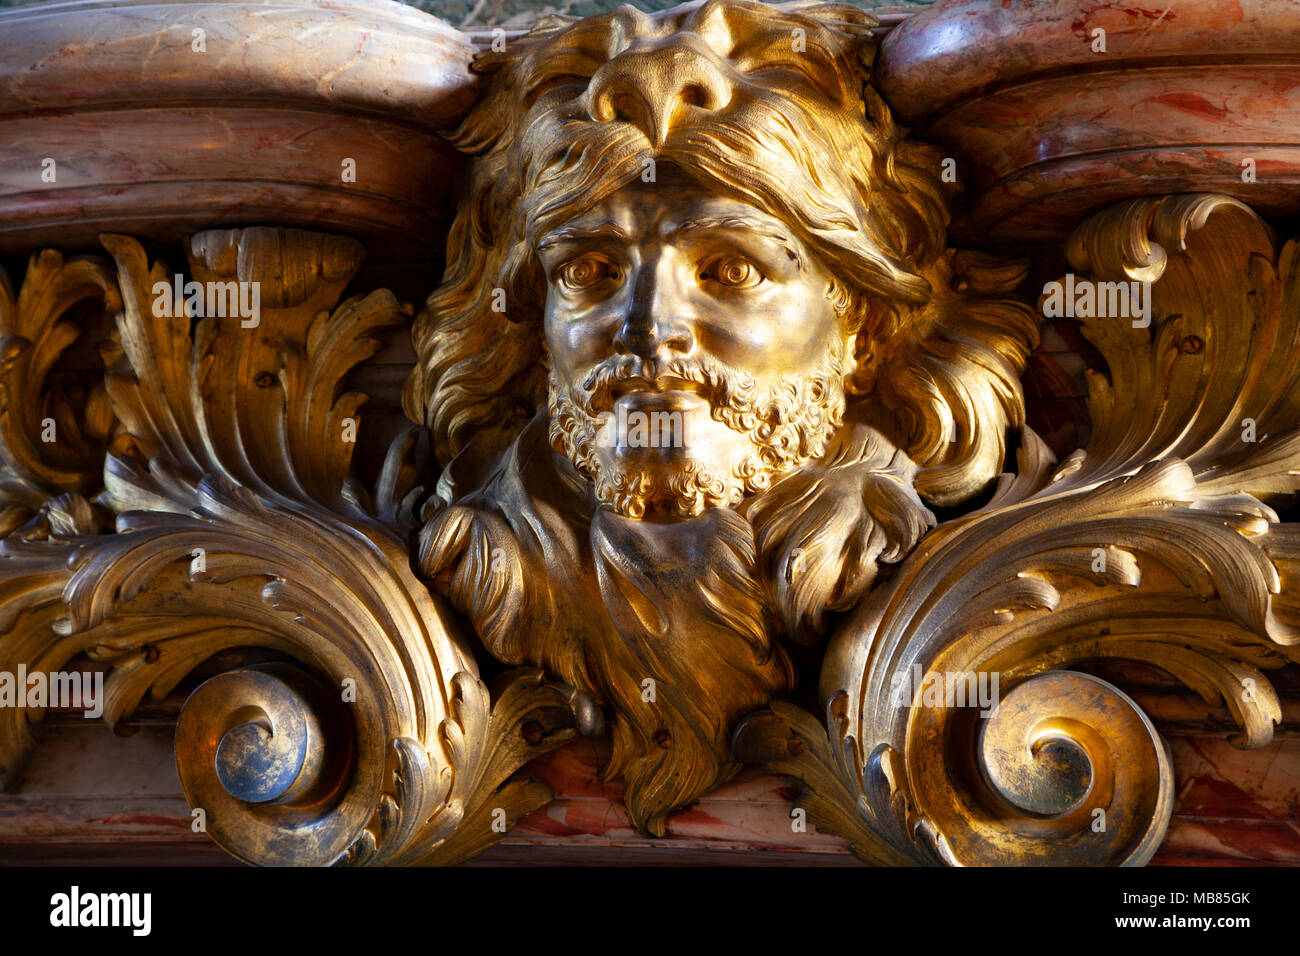 Chateau de Versailles (Palace of Versailles), a UNESCO World Heritage Site, France - detail of gilded  frieze on the interior on first floor - Stock Image